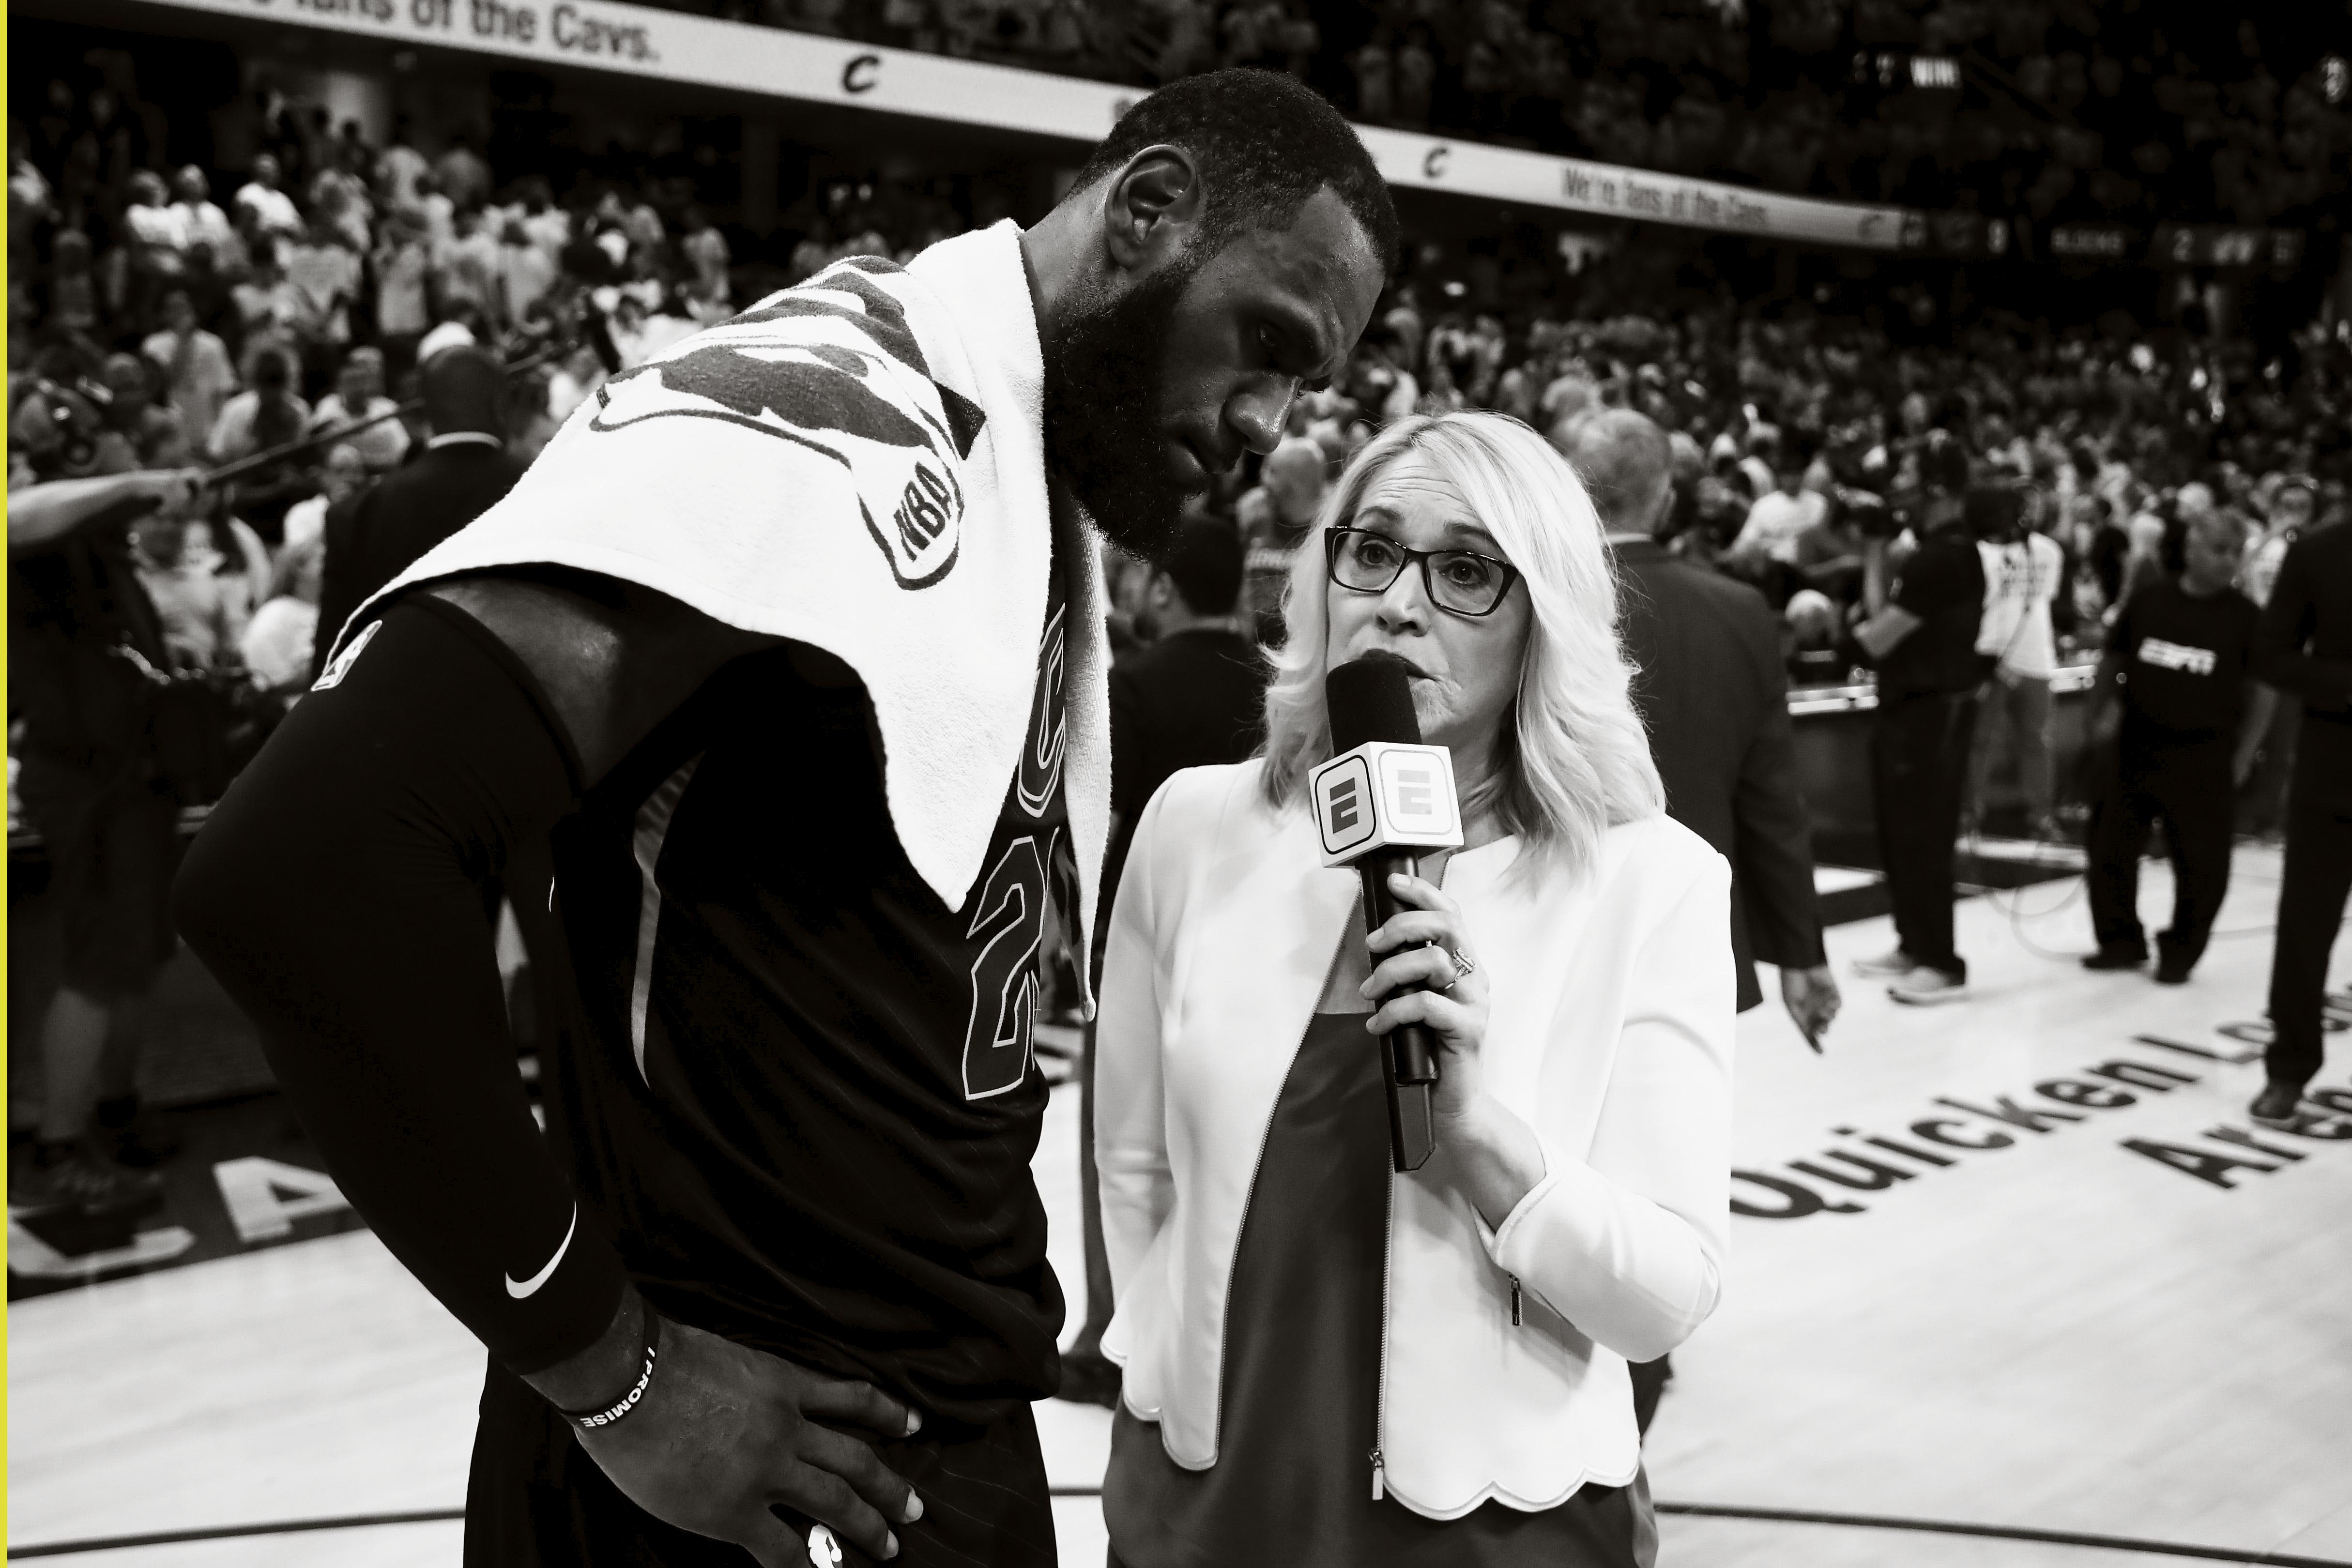 LeBron James speaks to TV personality Doris Burke at the 2018 NBA Eastern Conference Finals in Cleveland, Ohio.